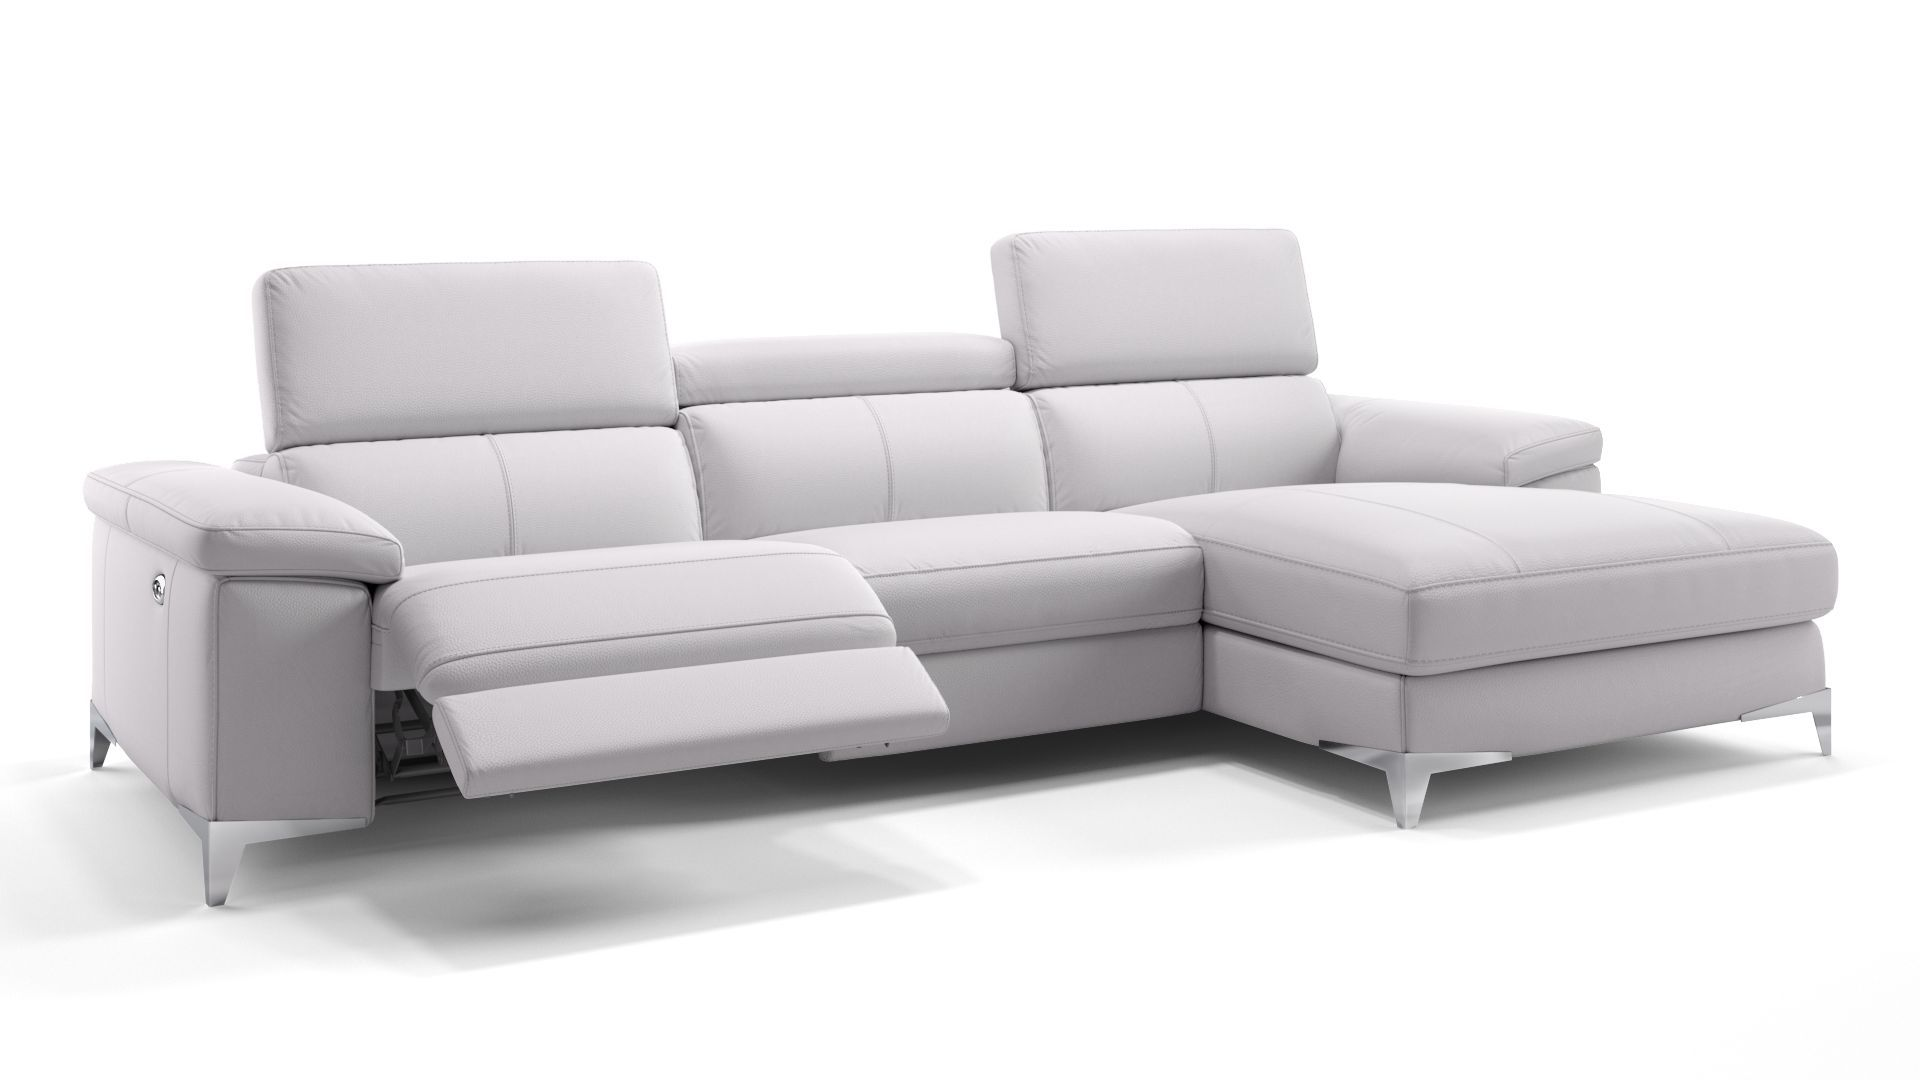 Venosa Leder Eckcouch Sofa Couch Mobel Couch